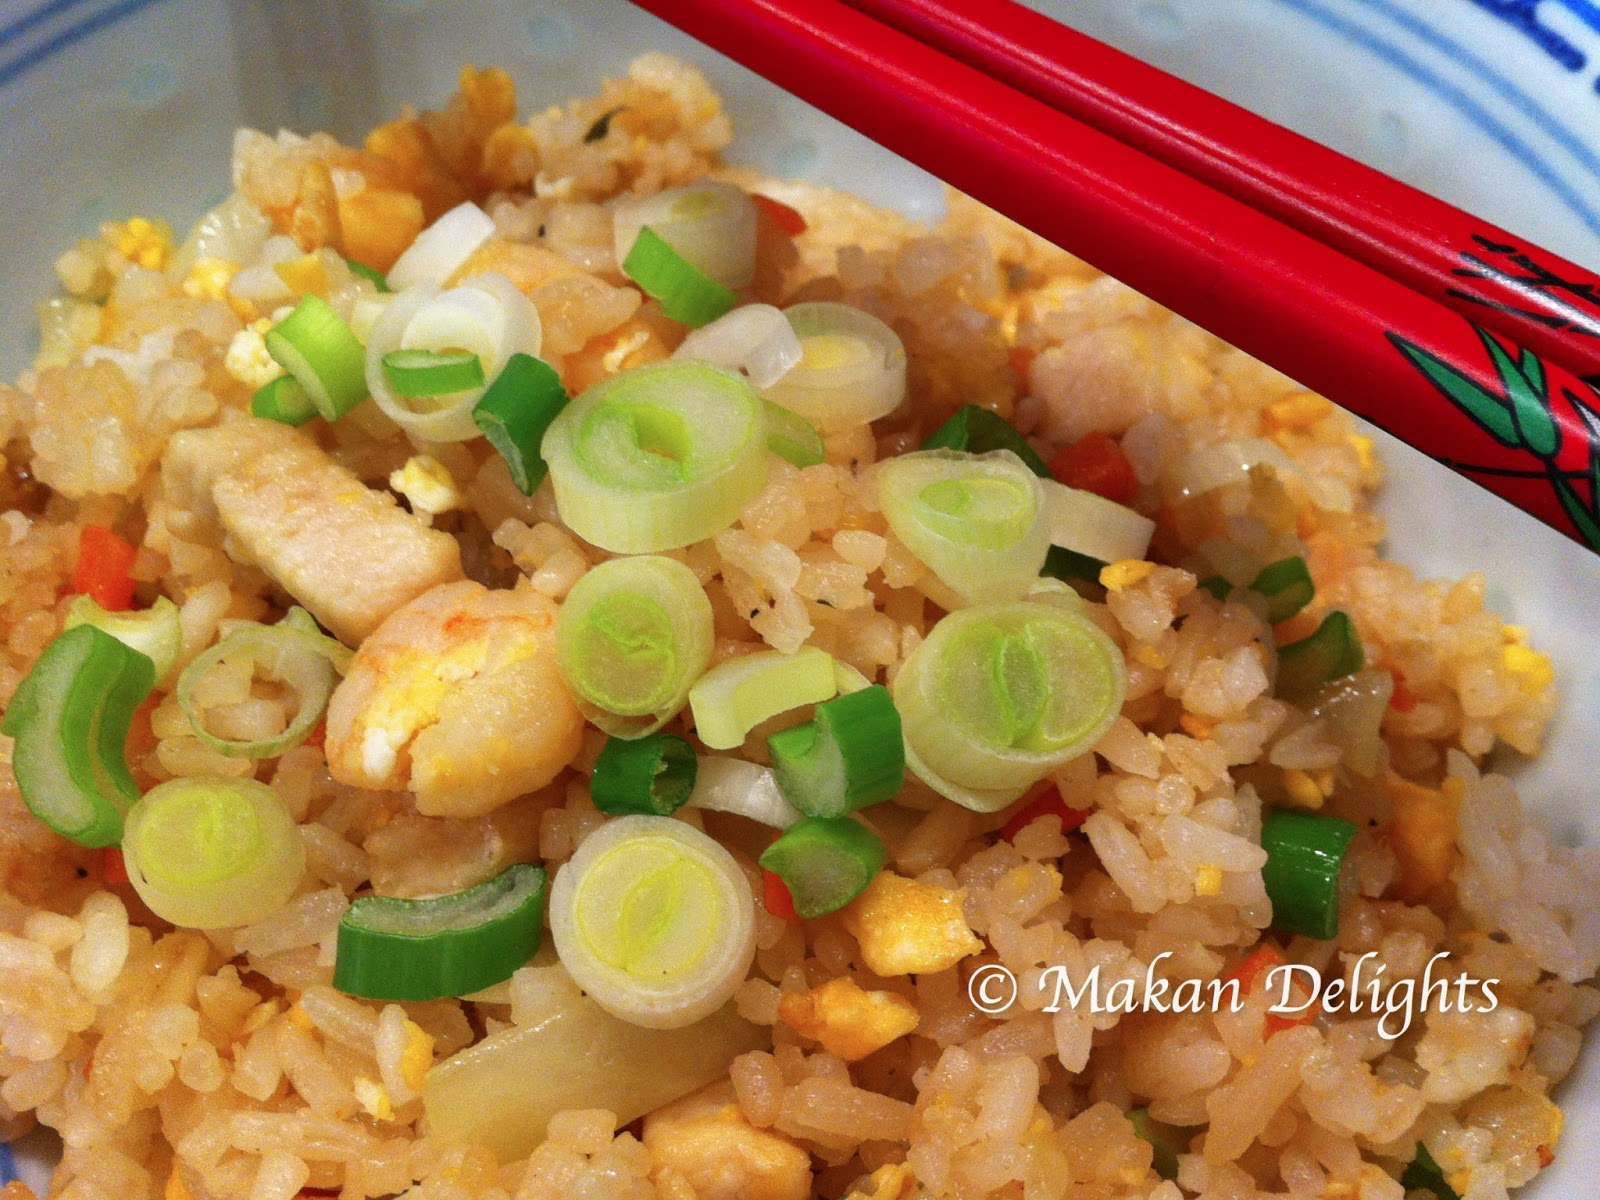 Makan delights yangzhou fried rice this is a simple and delicious dish using left over cooked rice it is quick to prepare and will fill any hungry tummy in no time ccuart Image collections